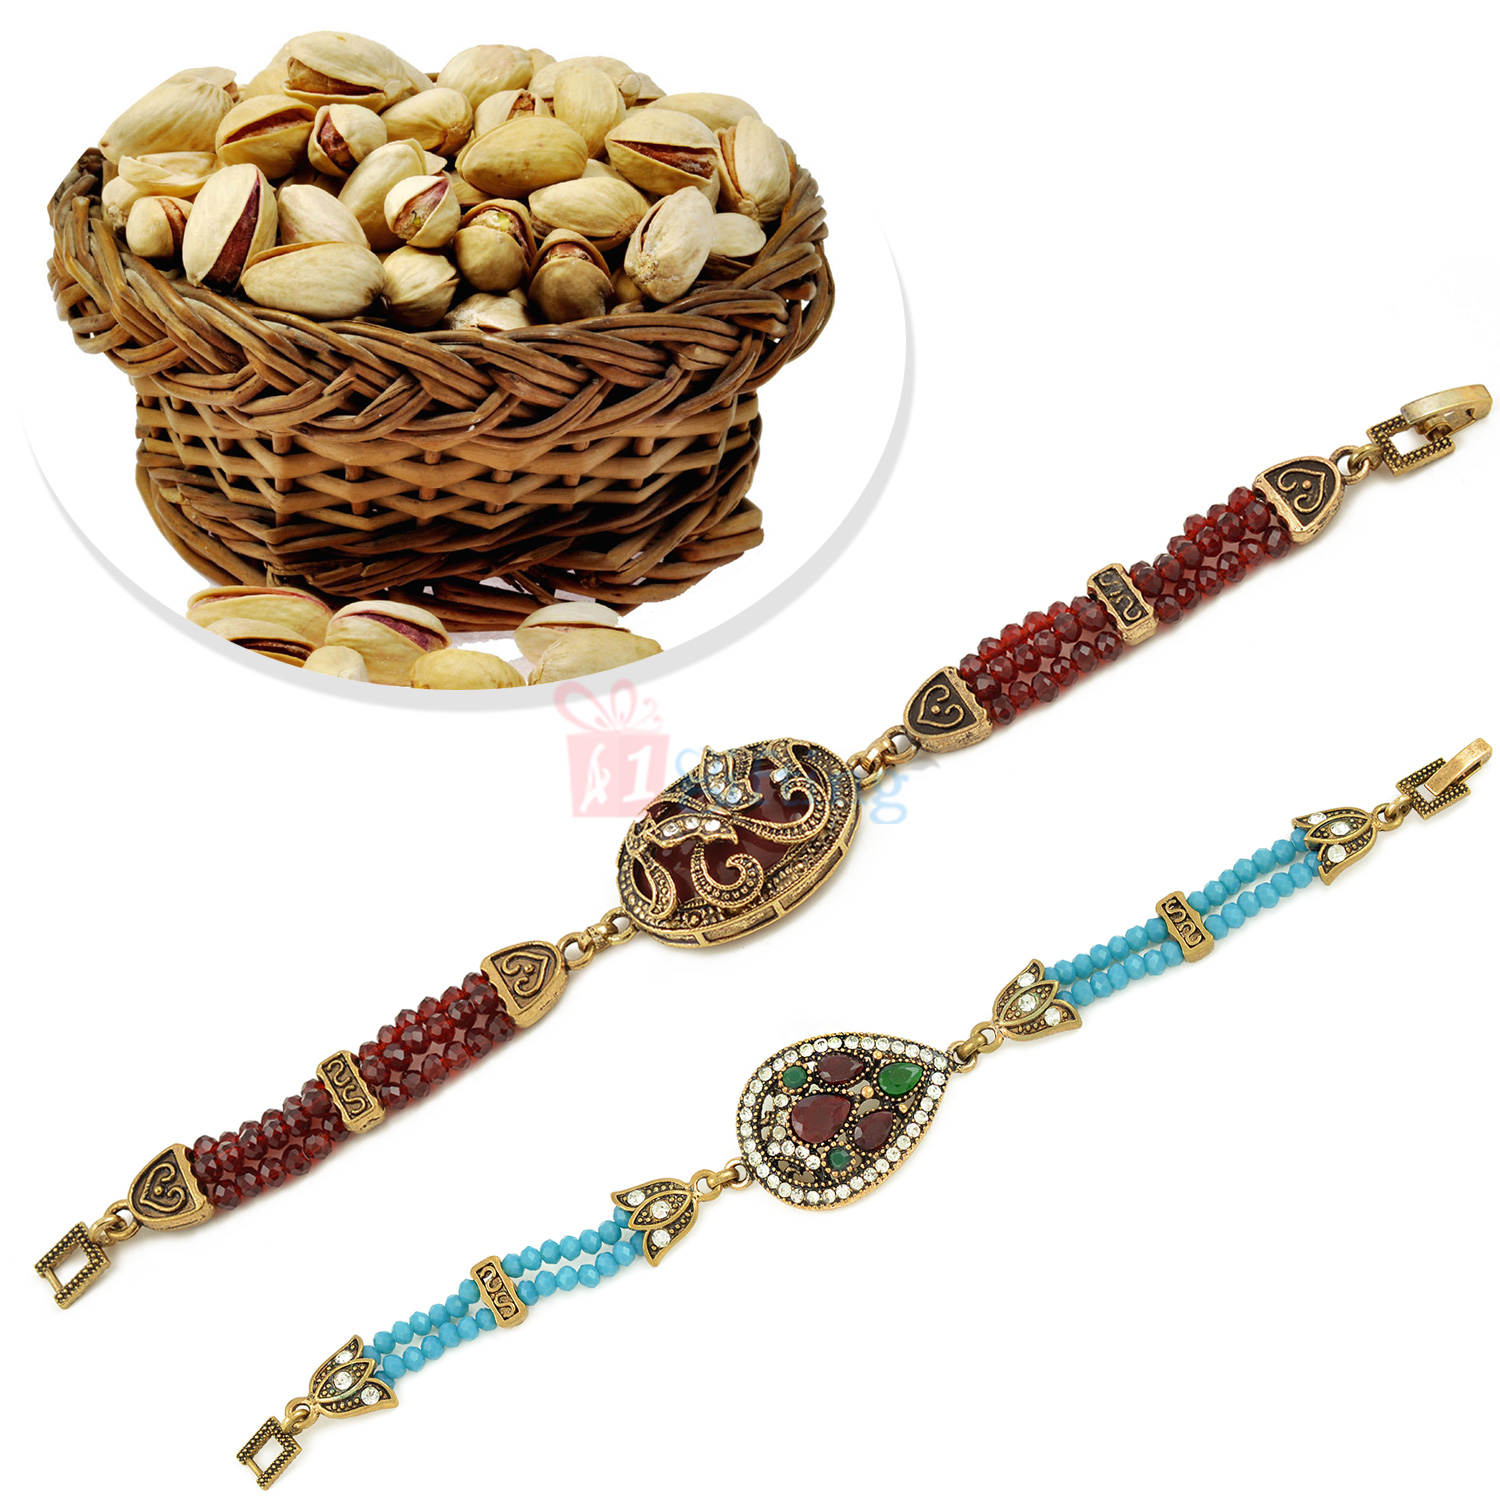 Awesome Antique 2 Bracelet with Pista Dryfruits Hamper